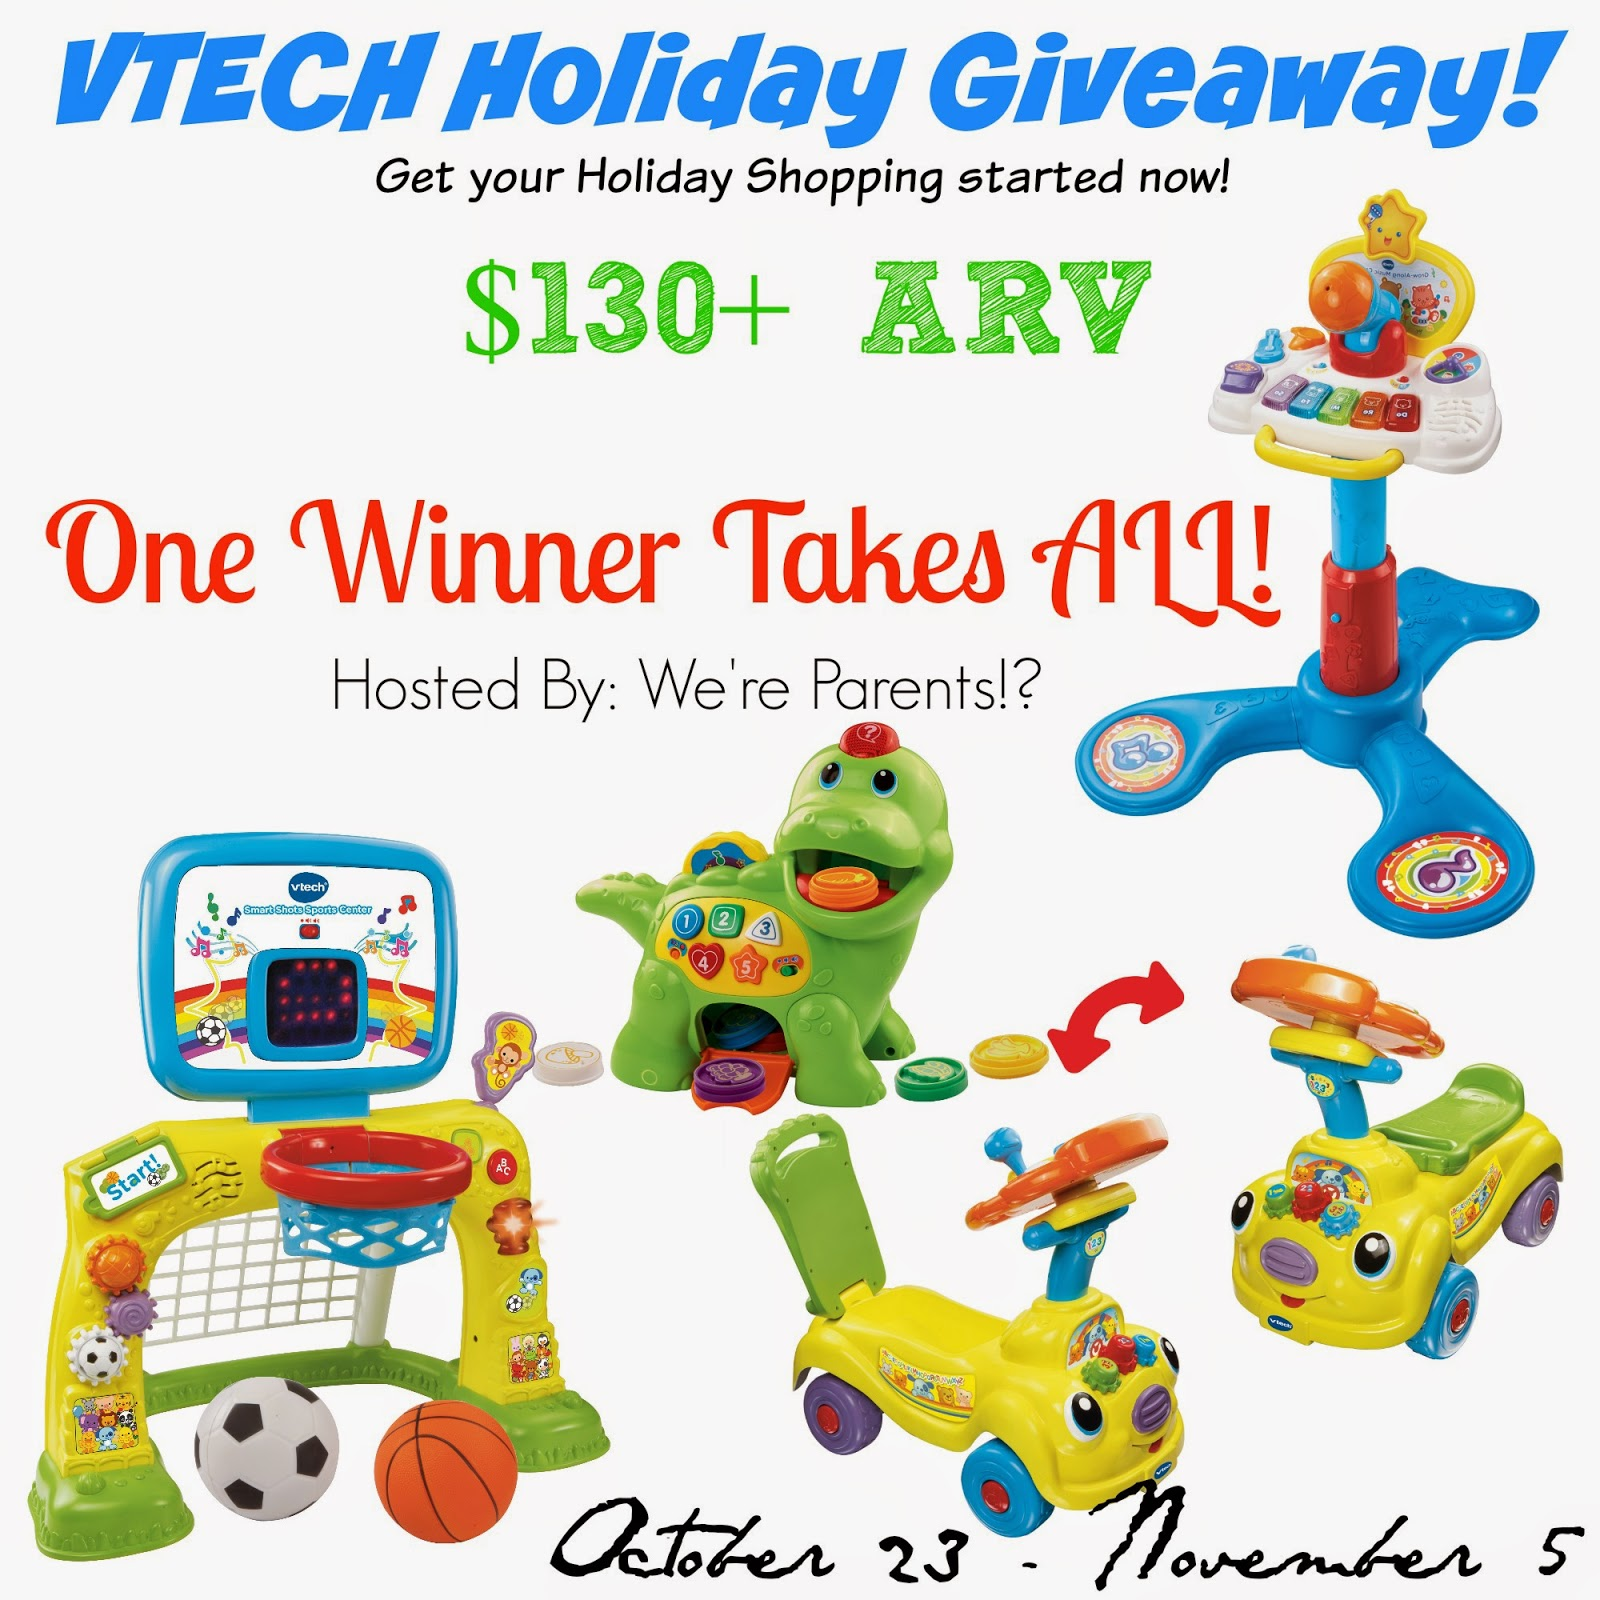 VTech Holiday Giveaway